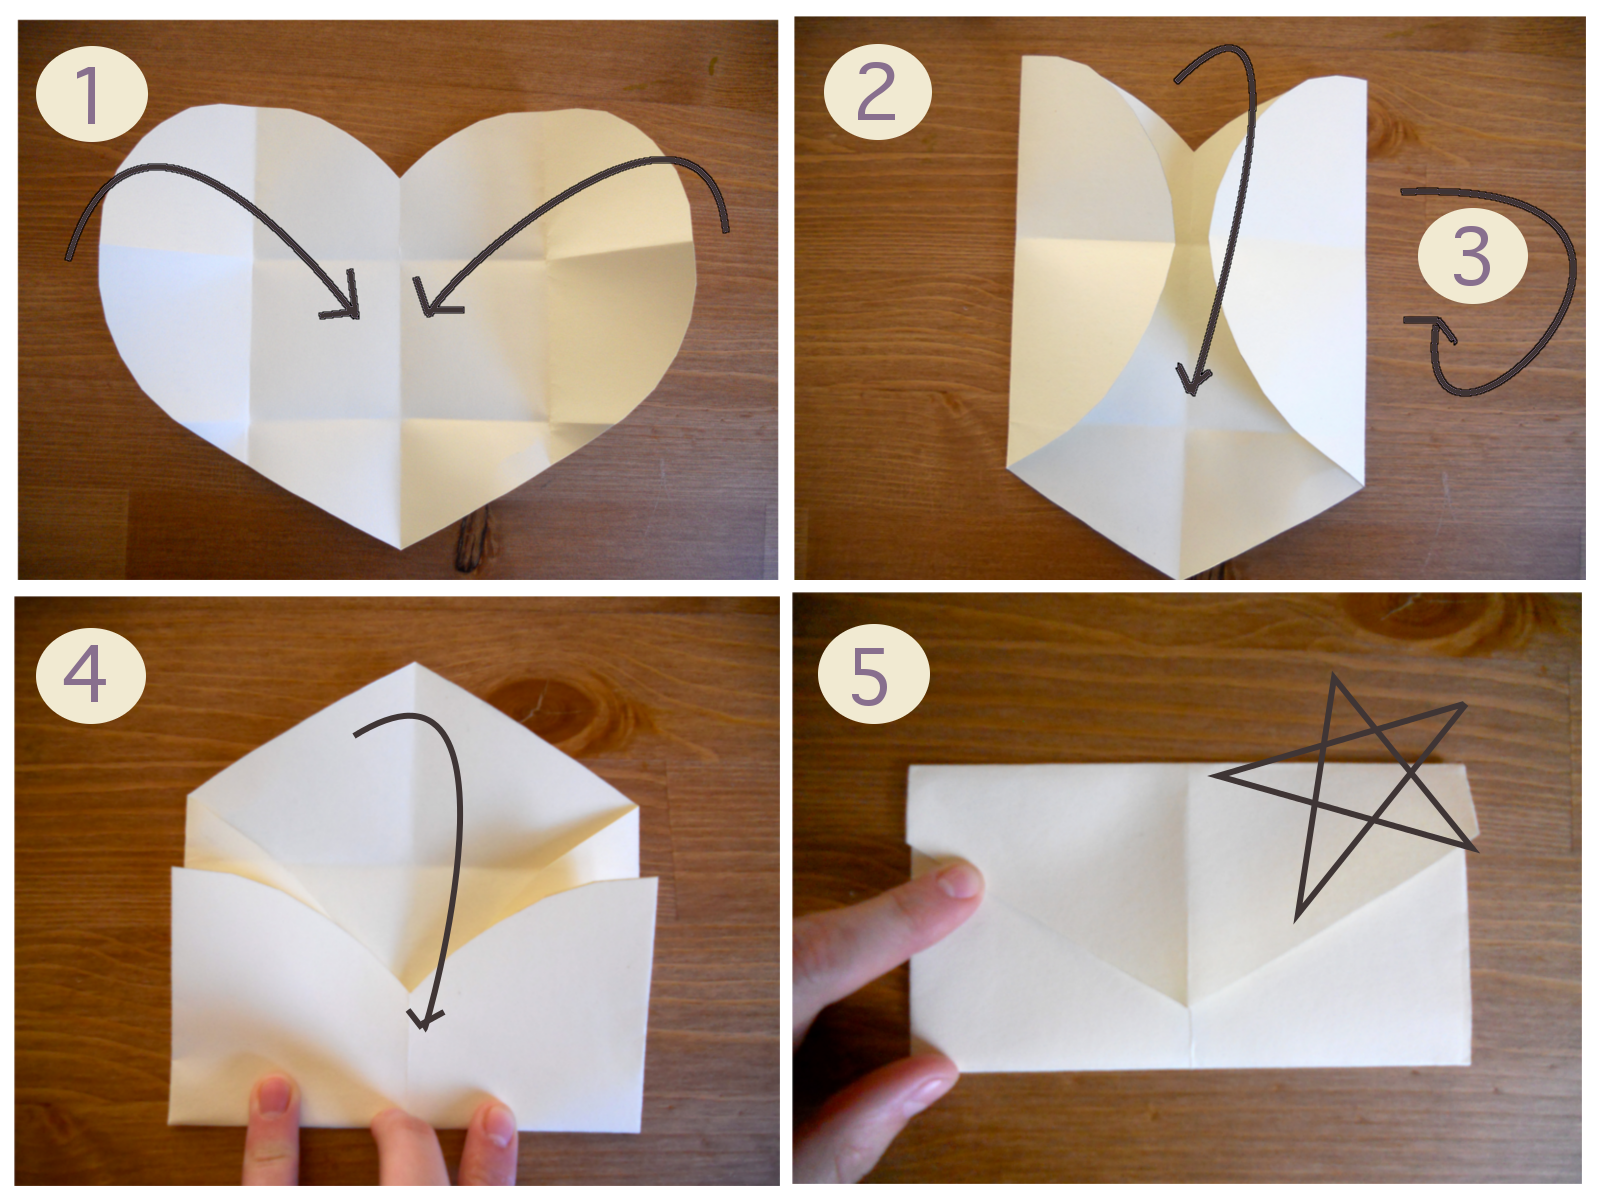 How To Make An Origami Box And Cover